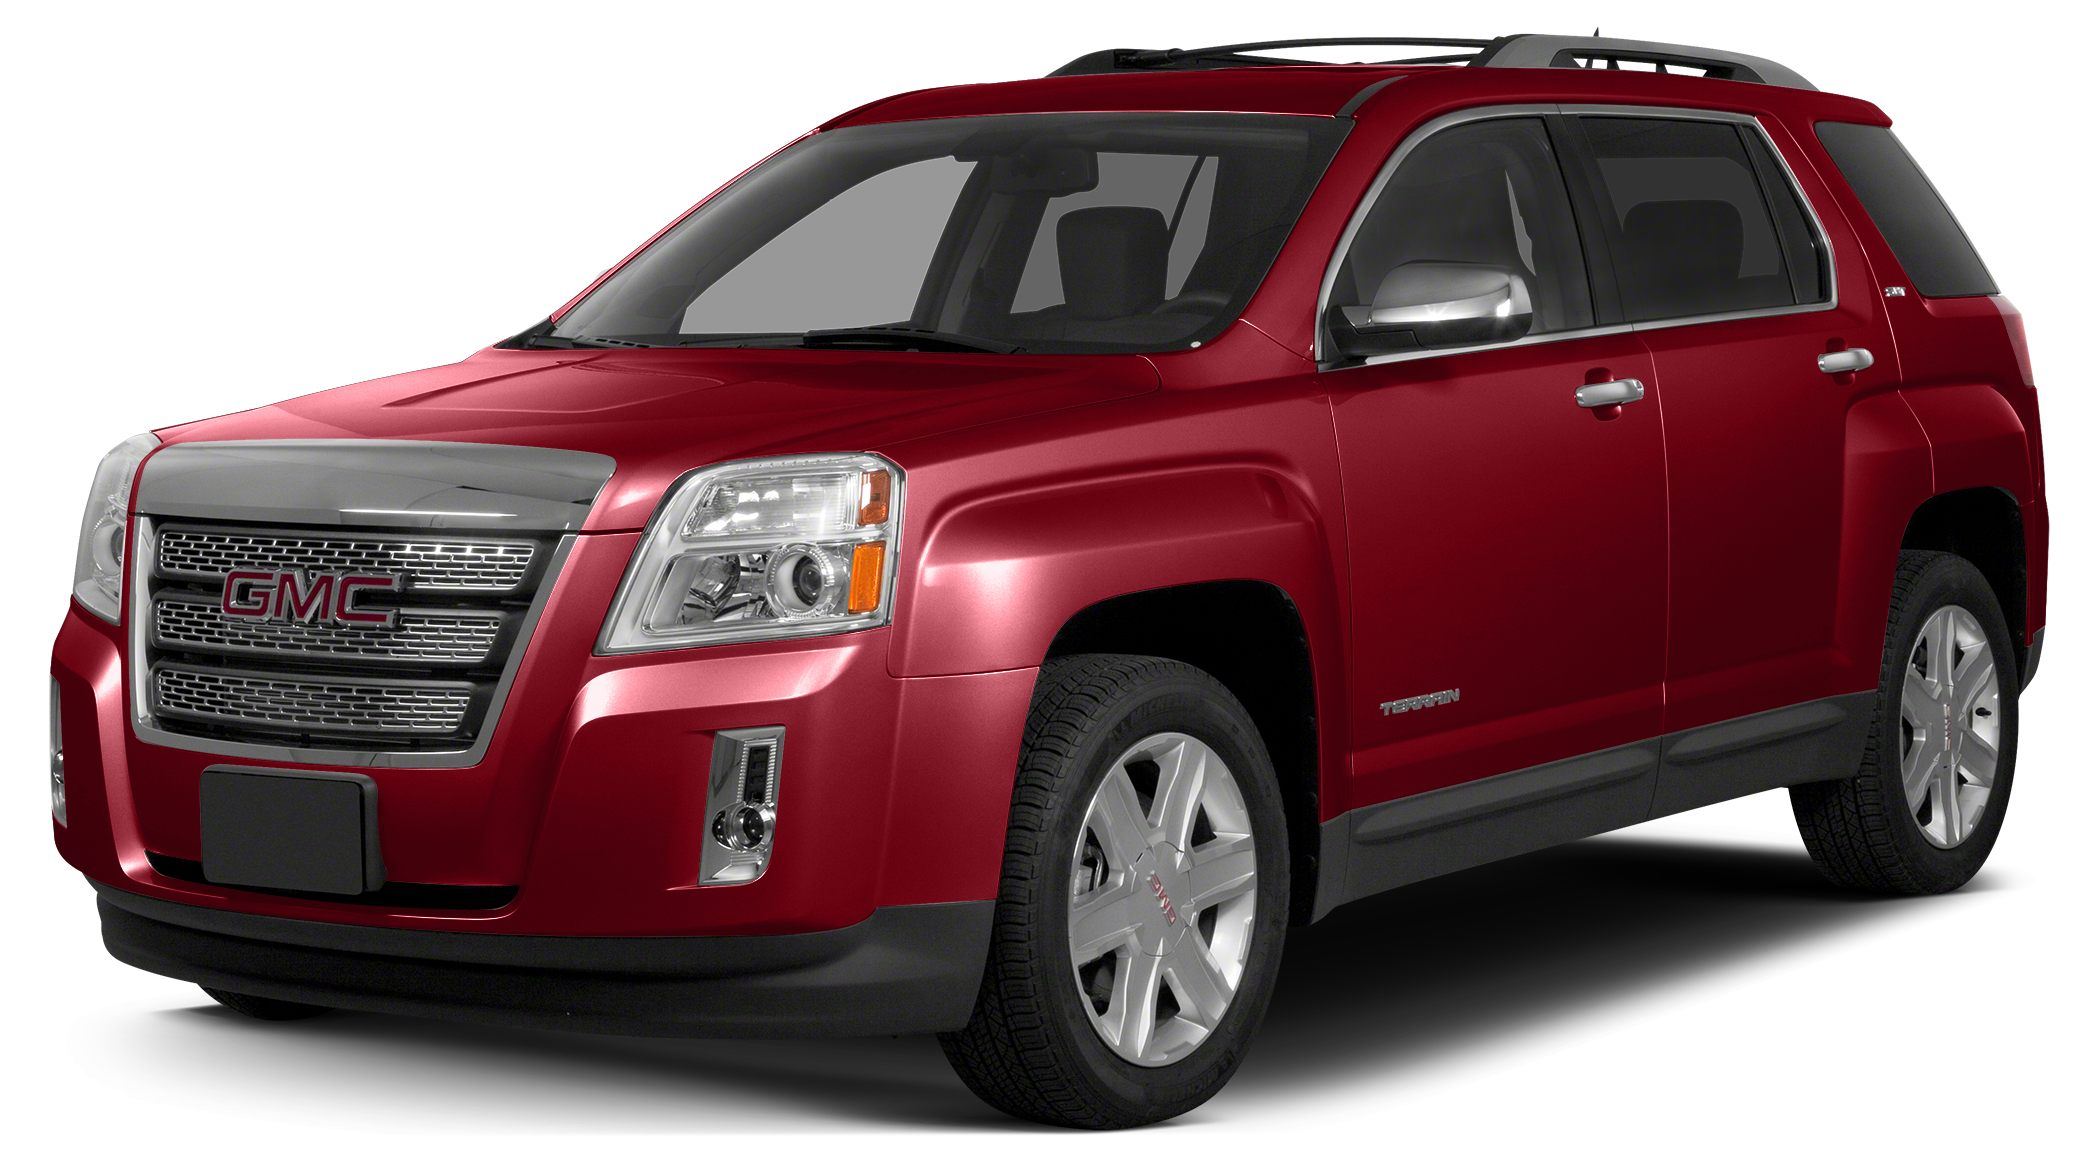 2015 GMC Terrain SLT-2 At Advantage Chrysler you know you are getting a safe and dependable vehicl